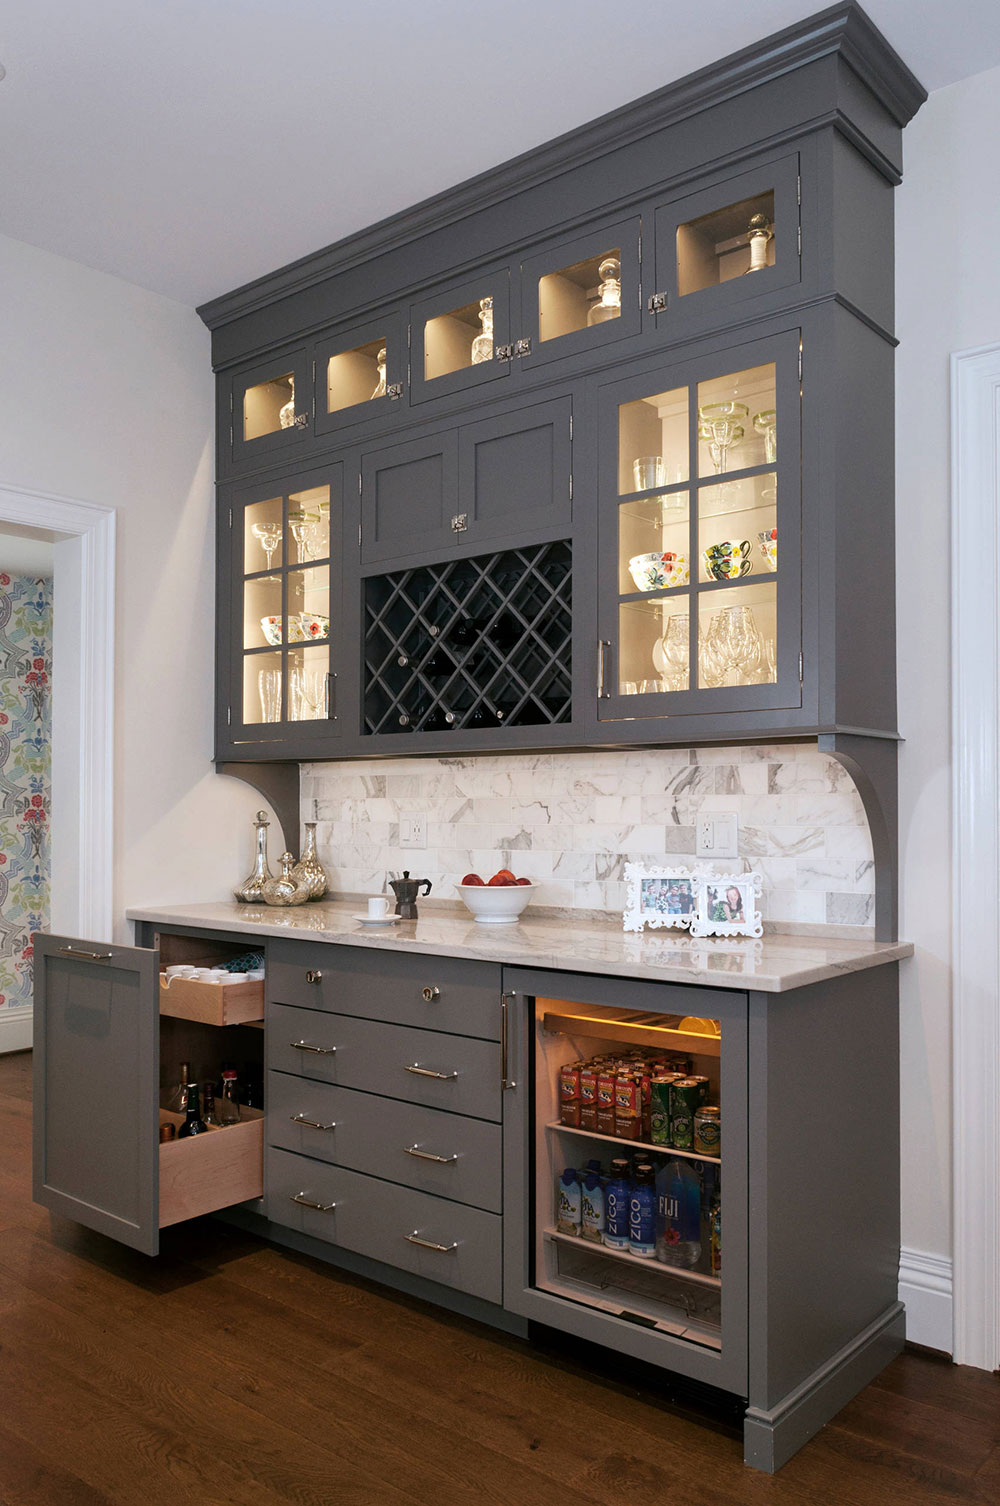 Kitchen-Remodel-Upper-St-Clair-von-Evalia-Design-LLC What to do with old kitchen cabinets (ideas for converted cabinets)